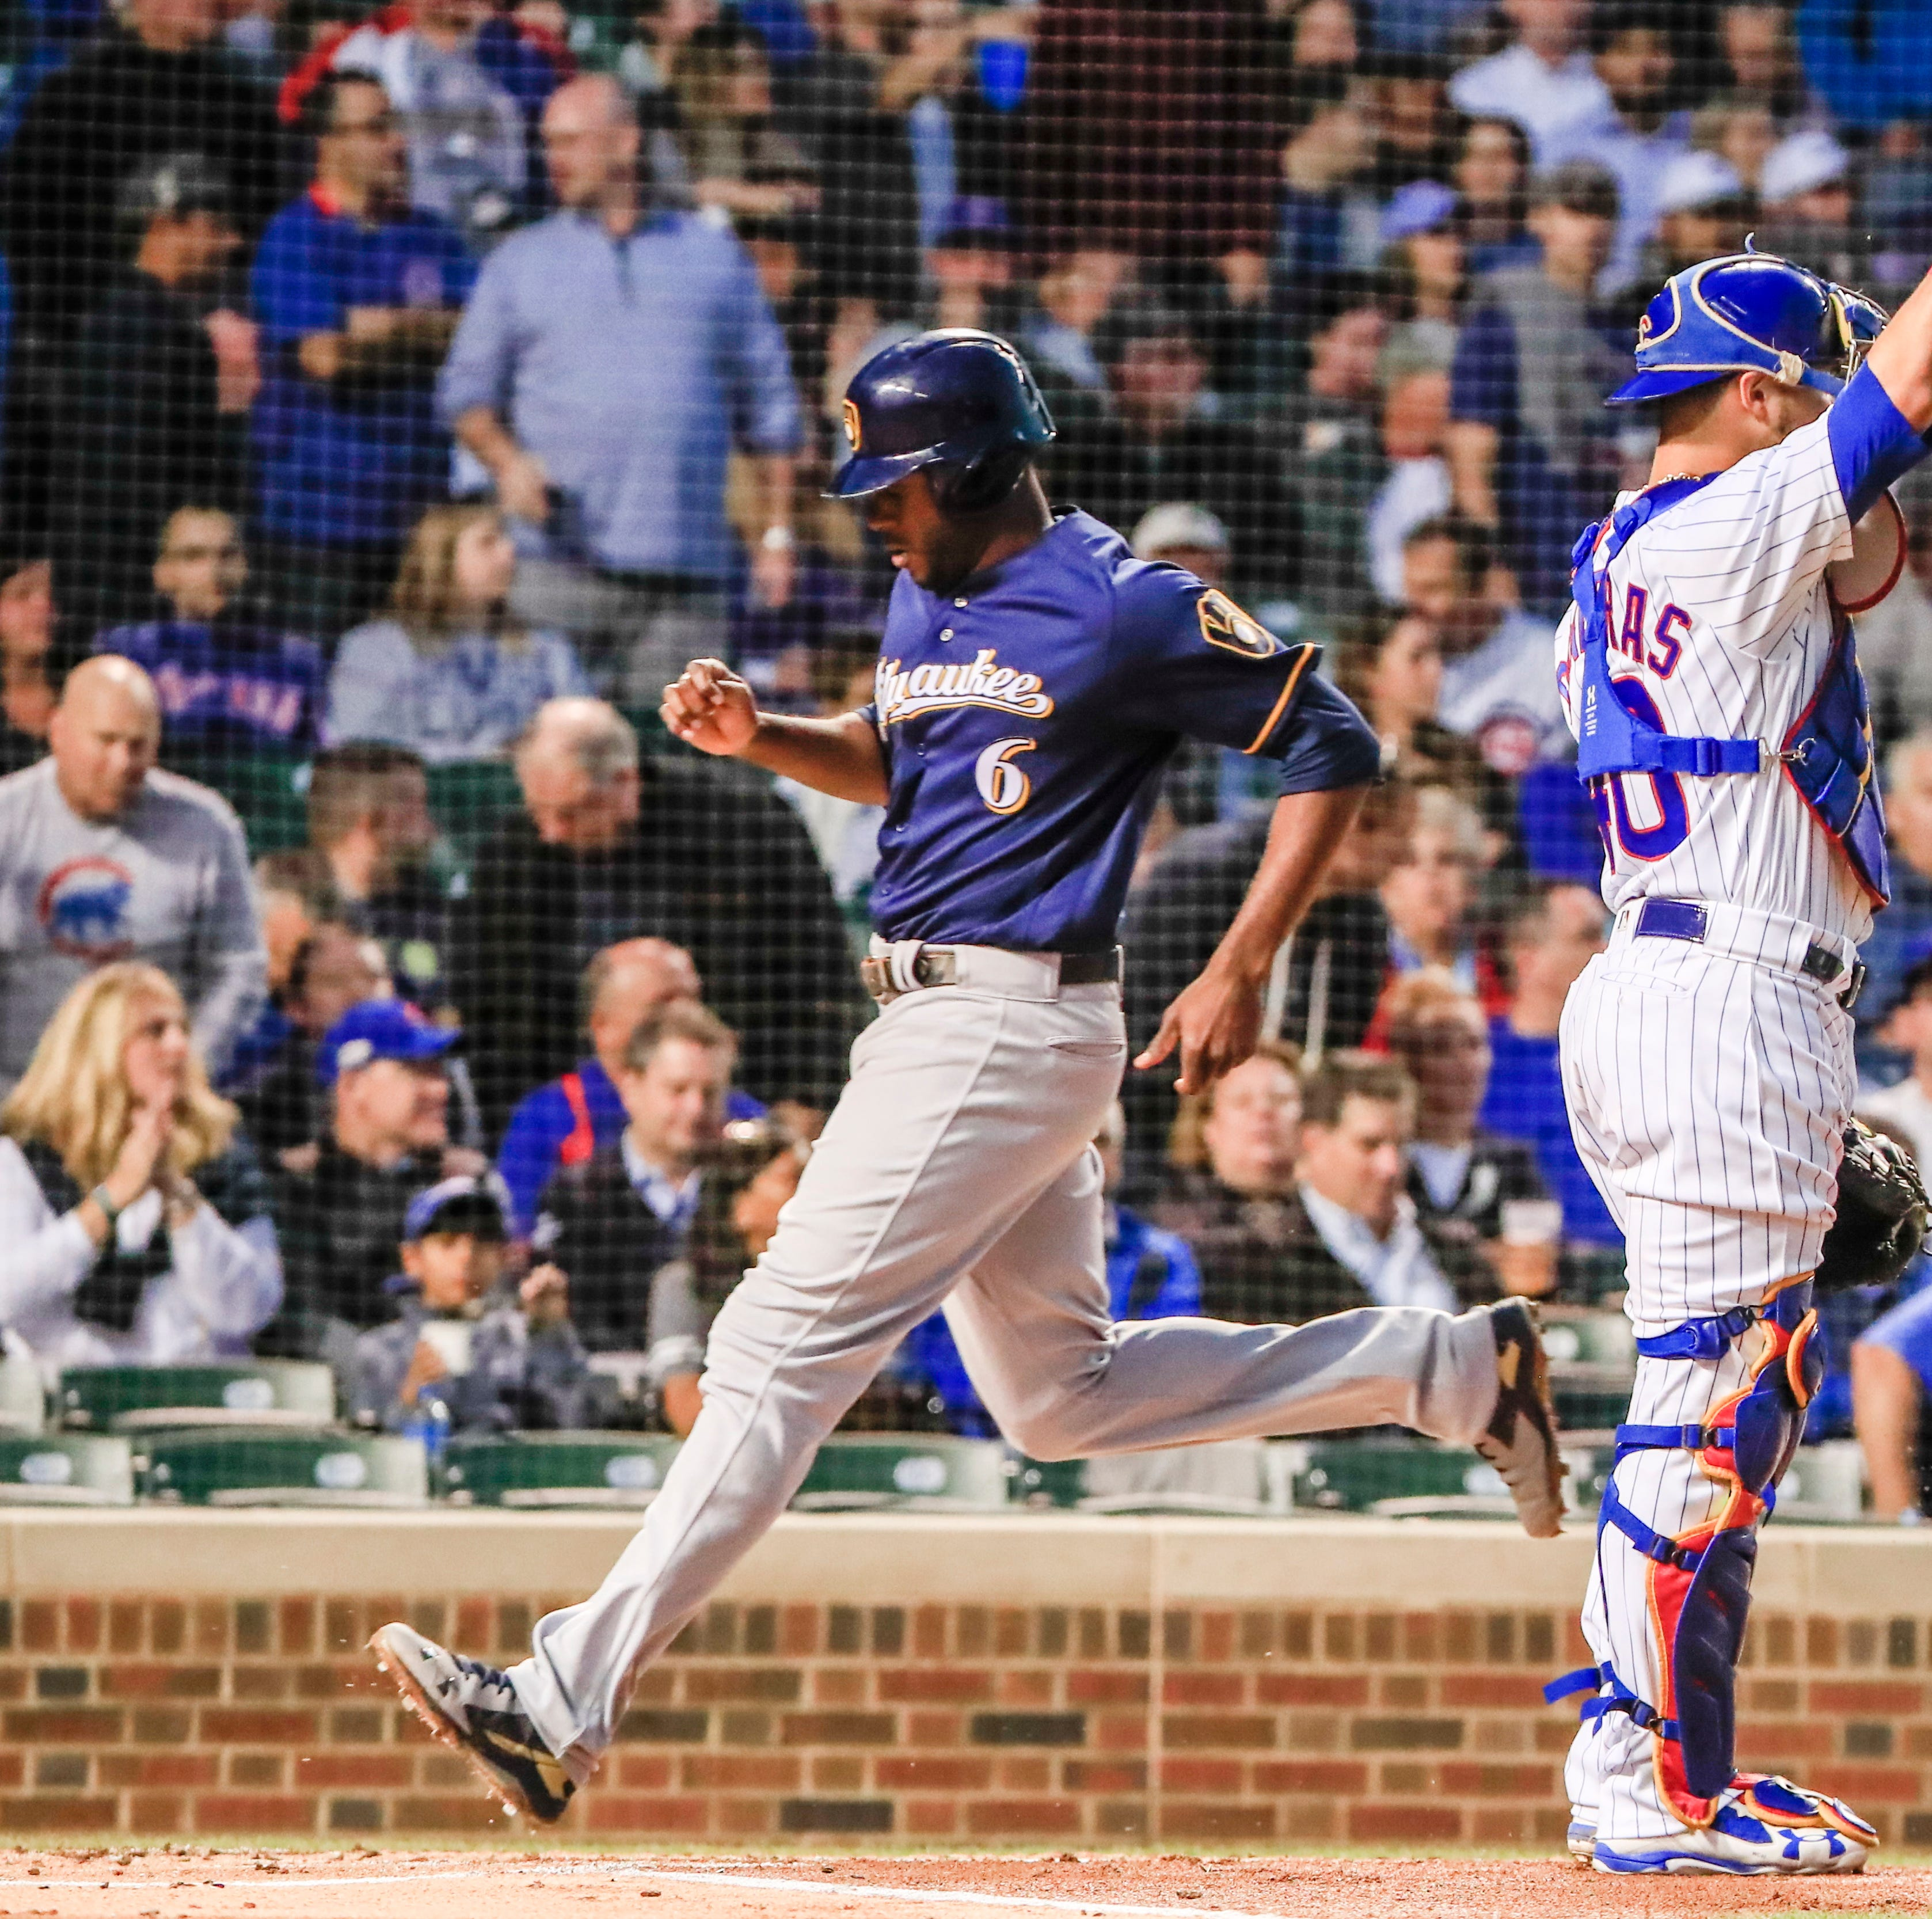 Brewers 3, Cubs 2: Chicago's lead cut to one game in NL Central as Brewers continue surge